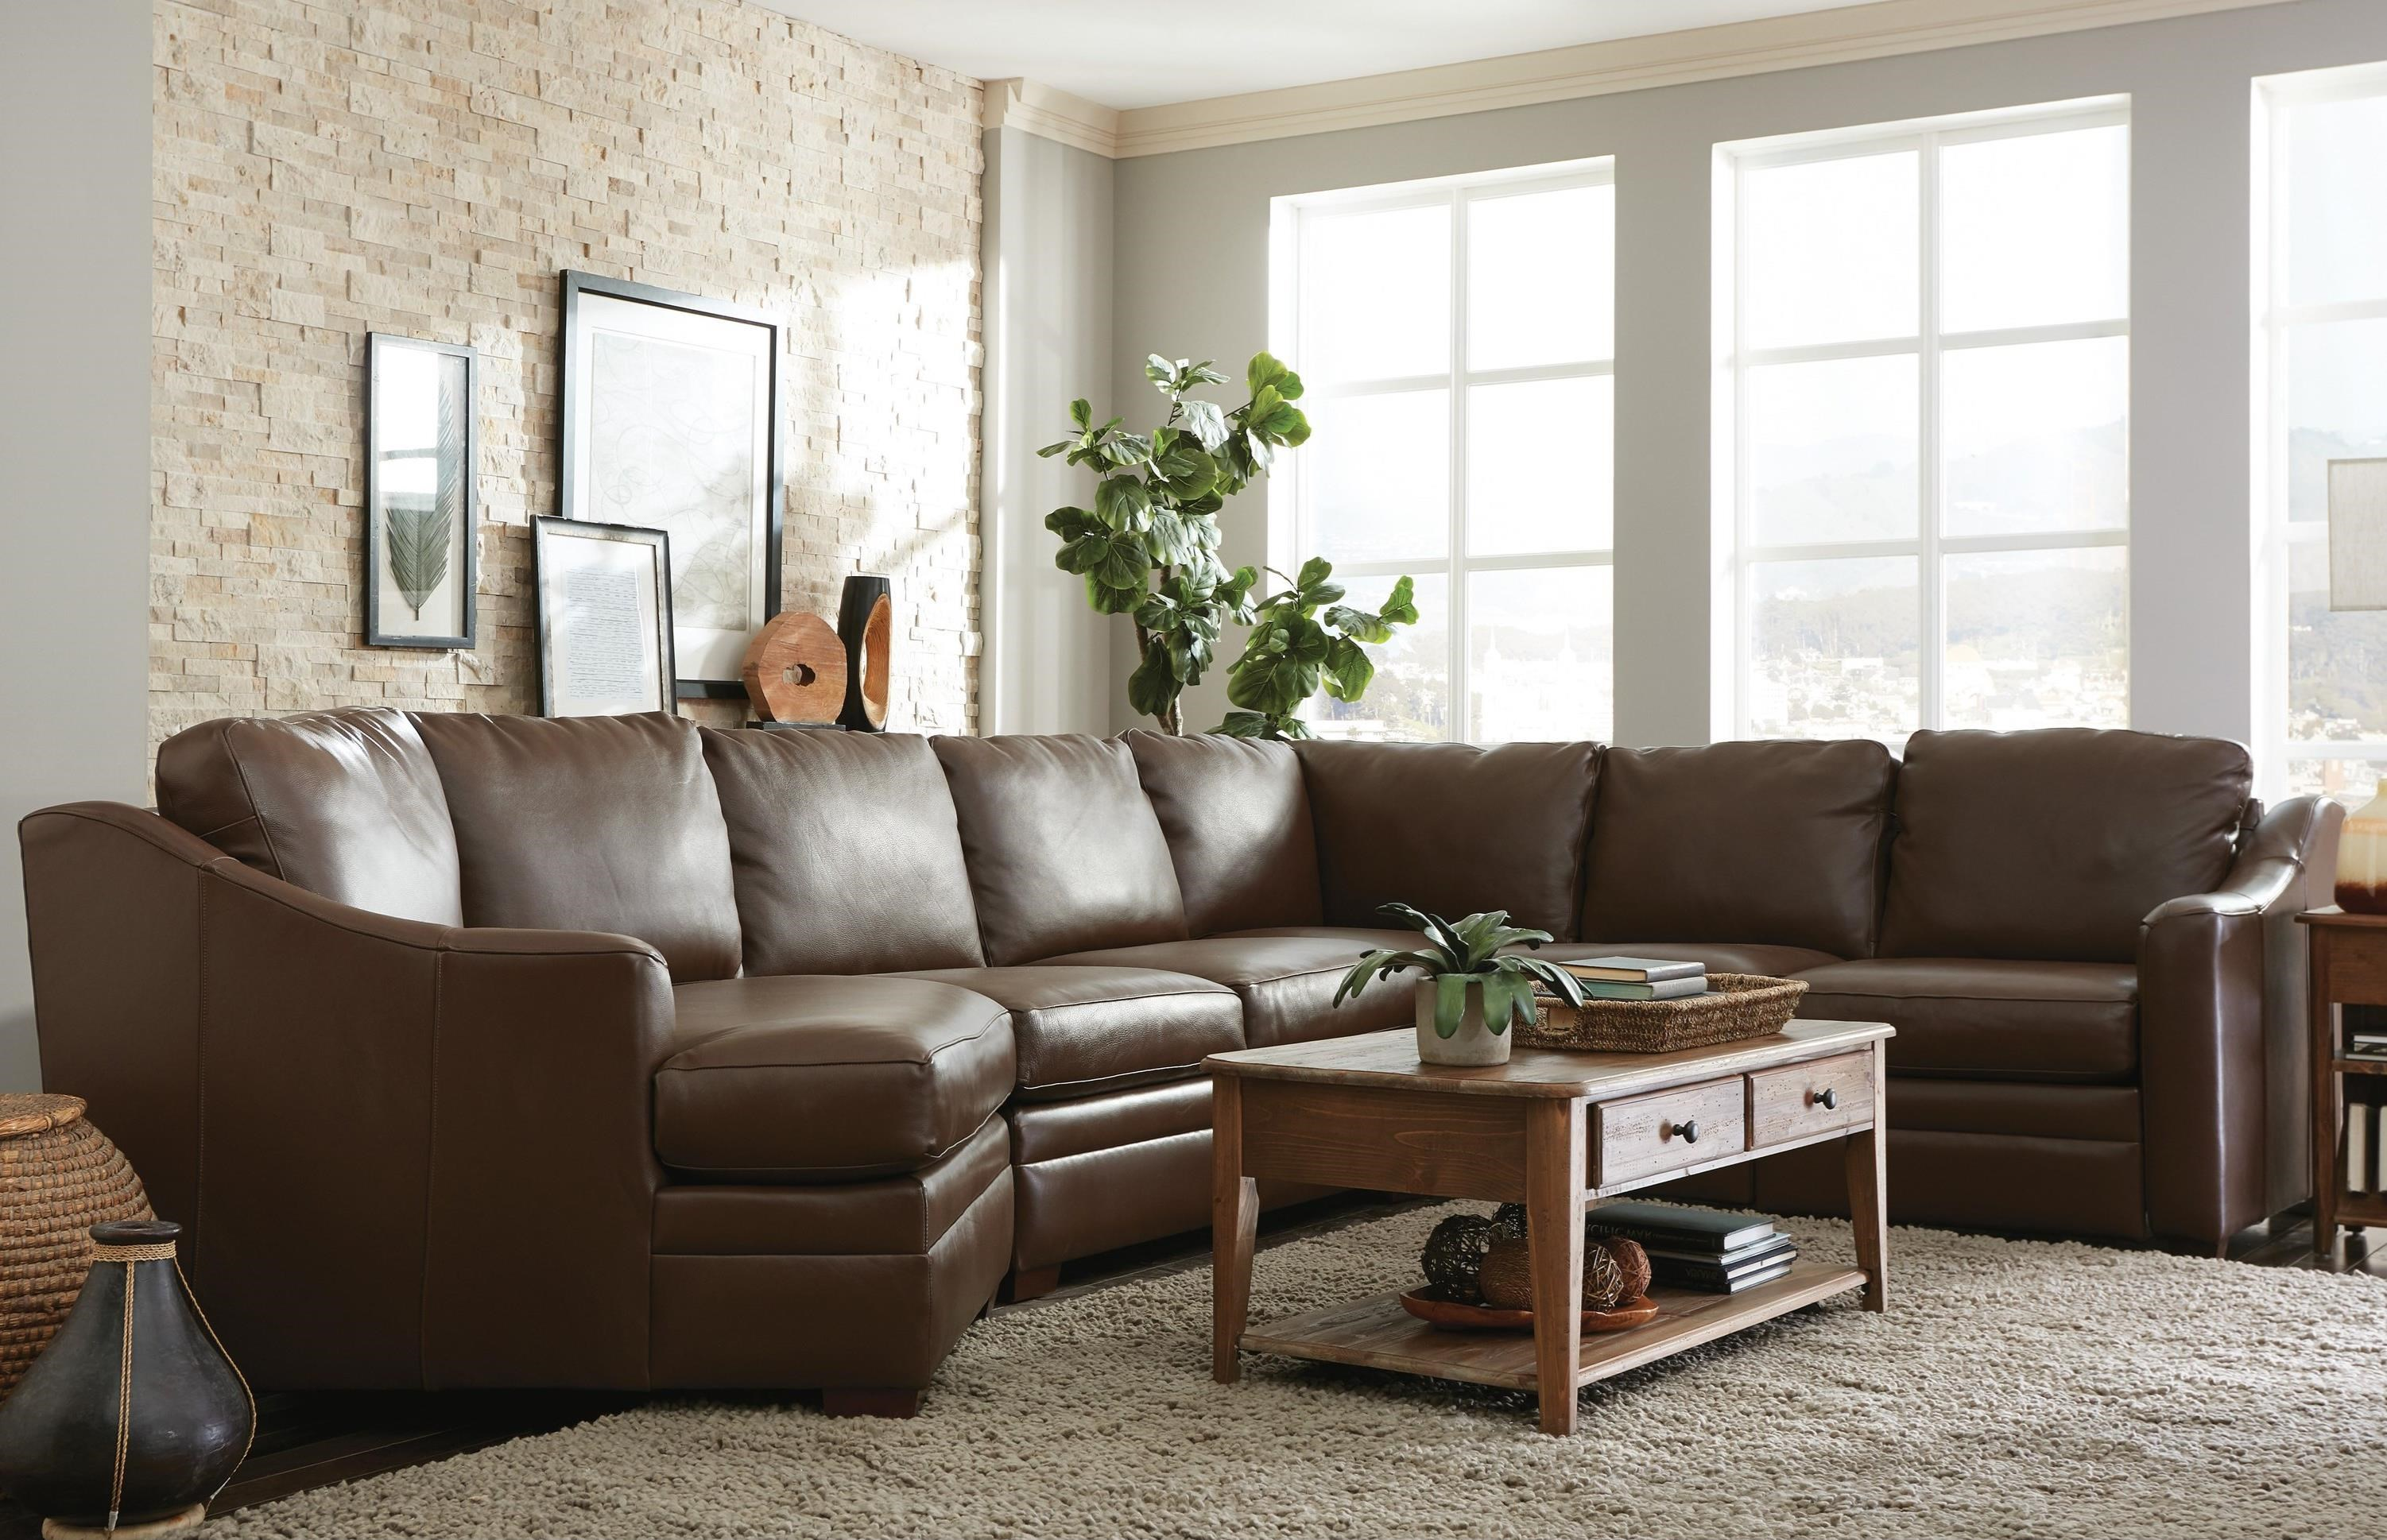 L9 Custom - Design Options Custom 3 Pc Sectional Sofa w/ Power Recliner by Craftmaster at Baer's Furniture